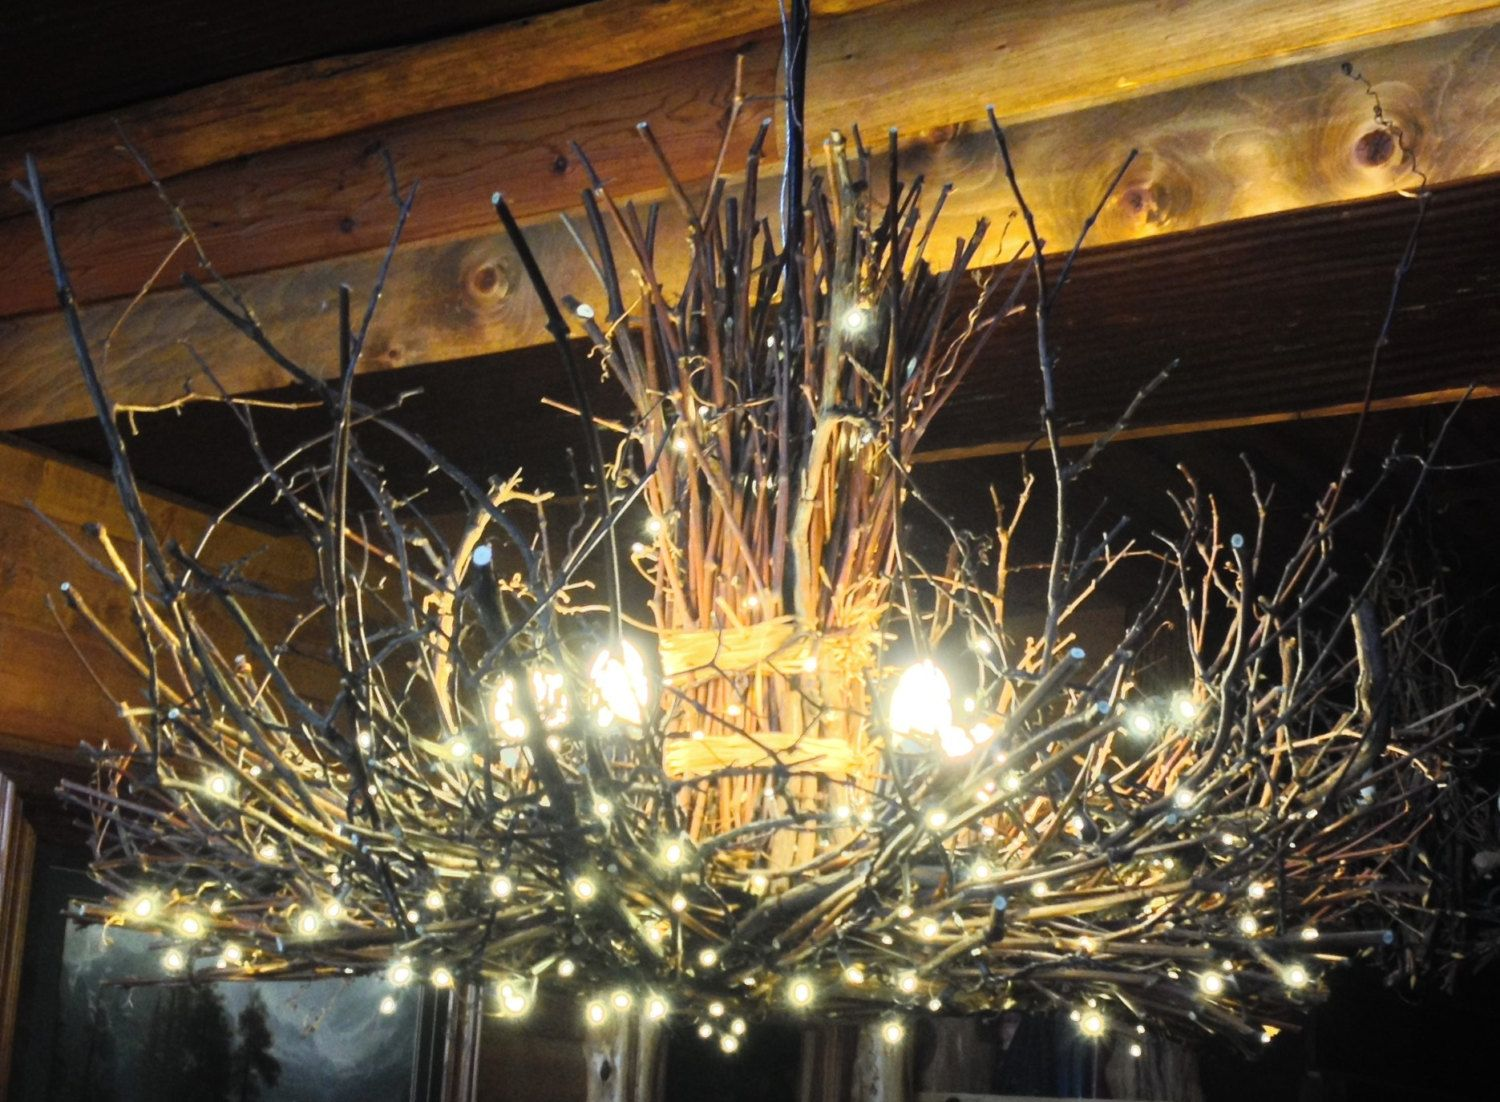 The Alachian For Ataylor Rustic Outdoor Chandelier 5 Candle Cabin Lighting By